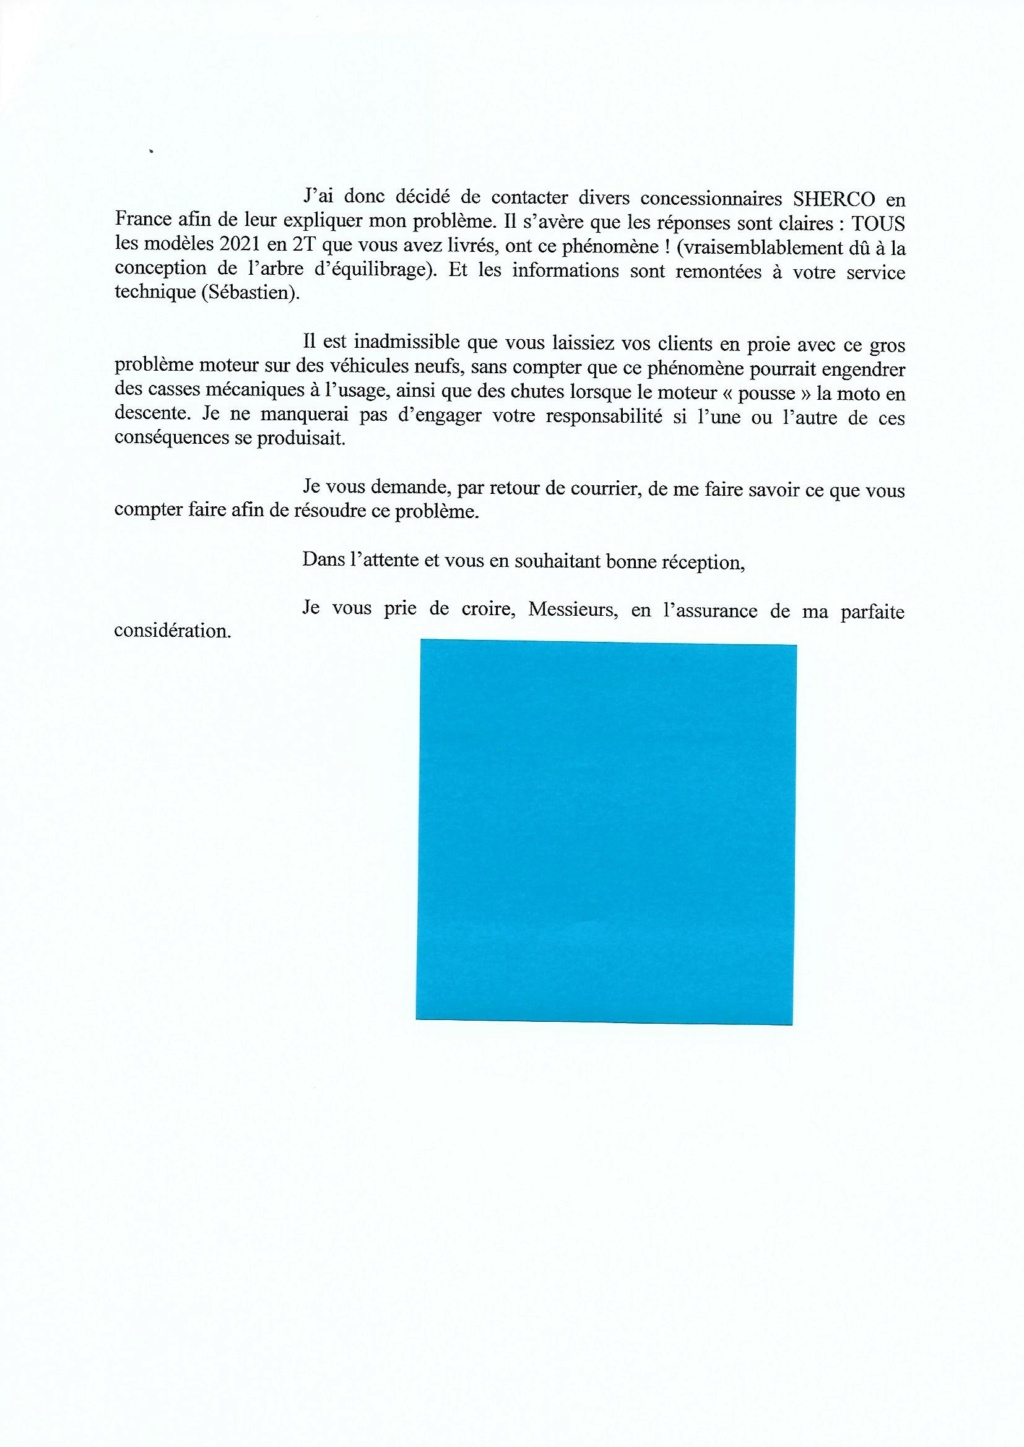 SHERCO 2T 2021 - Page 4 Lettre10